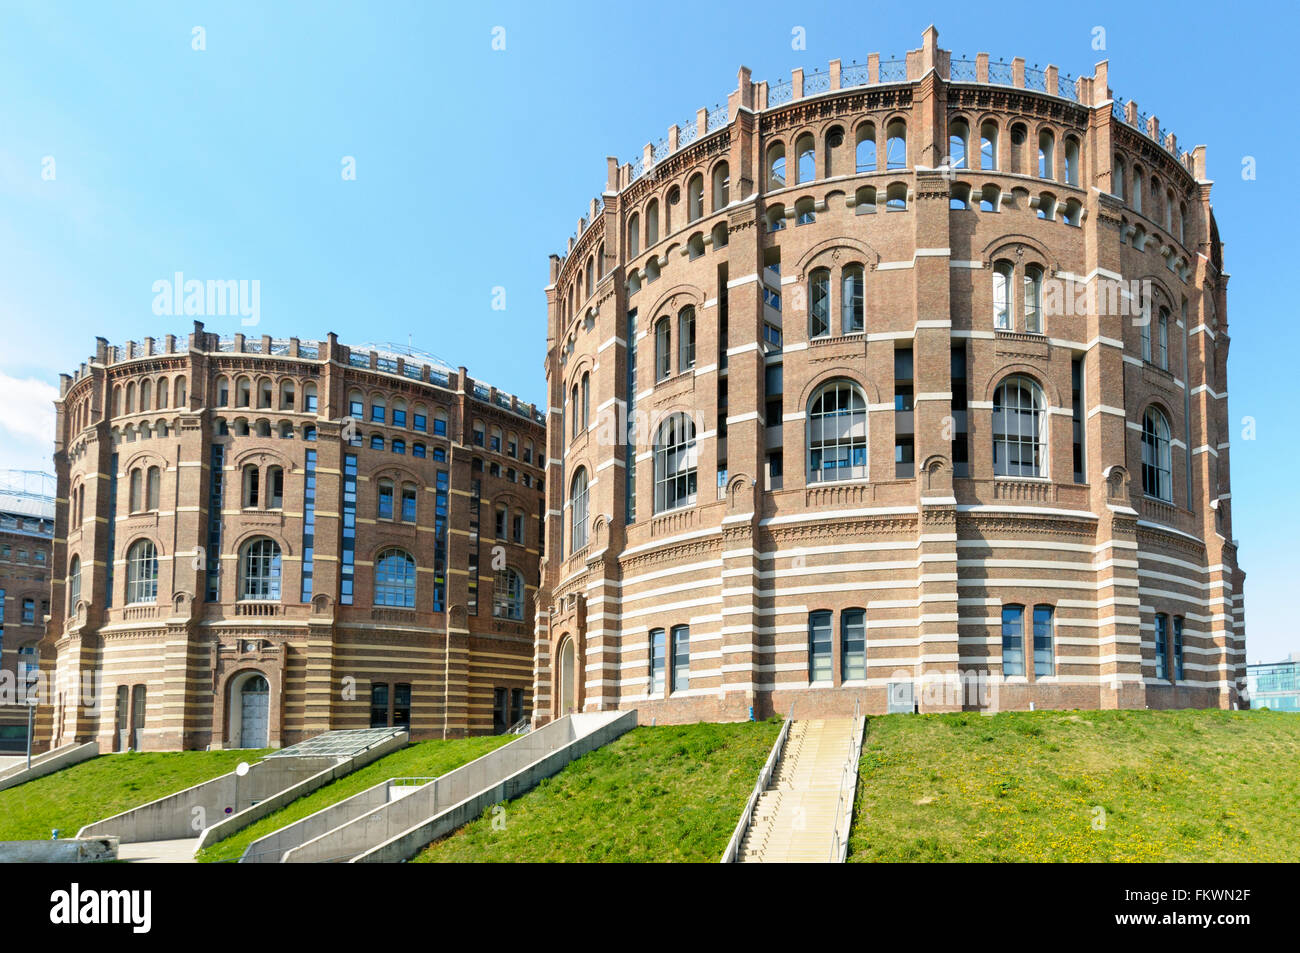 The gasometers of the former Vienna municipal gas works Gaswerk Simmering in  Vienna - Stock Image